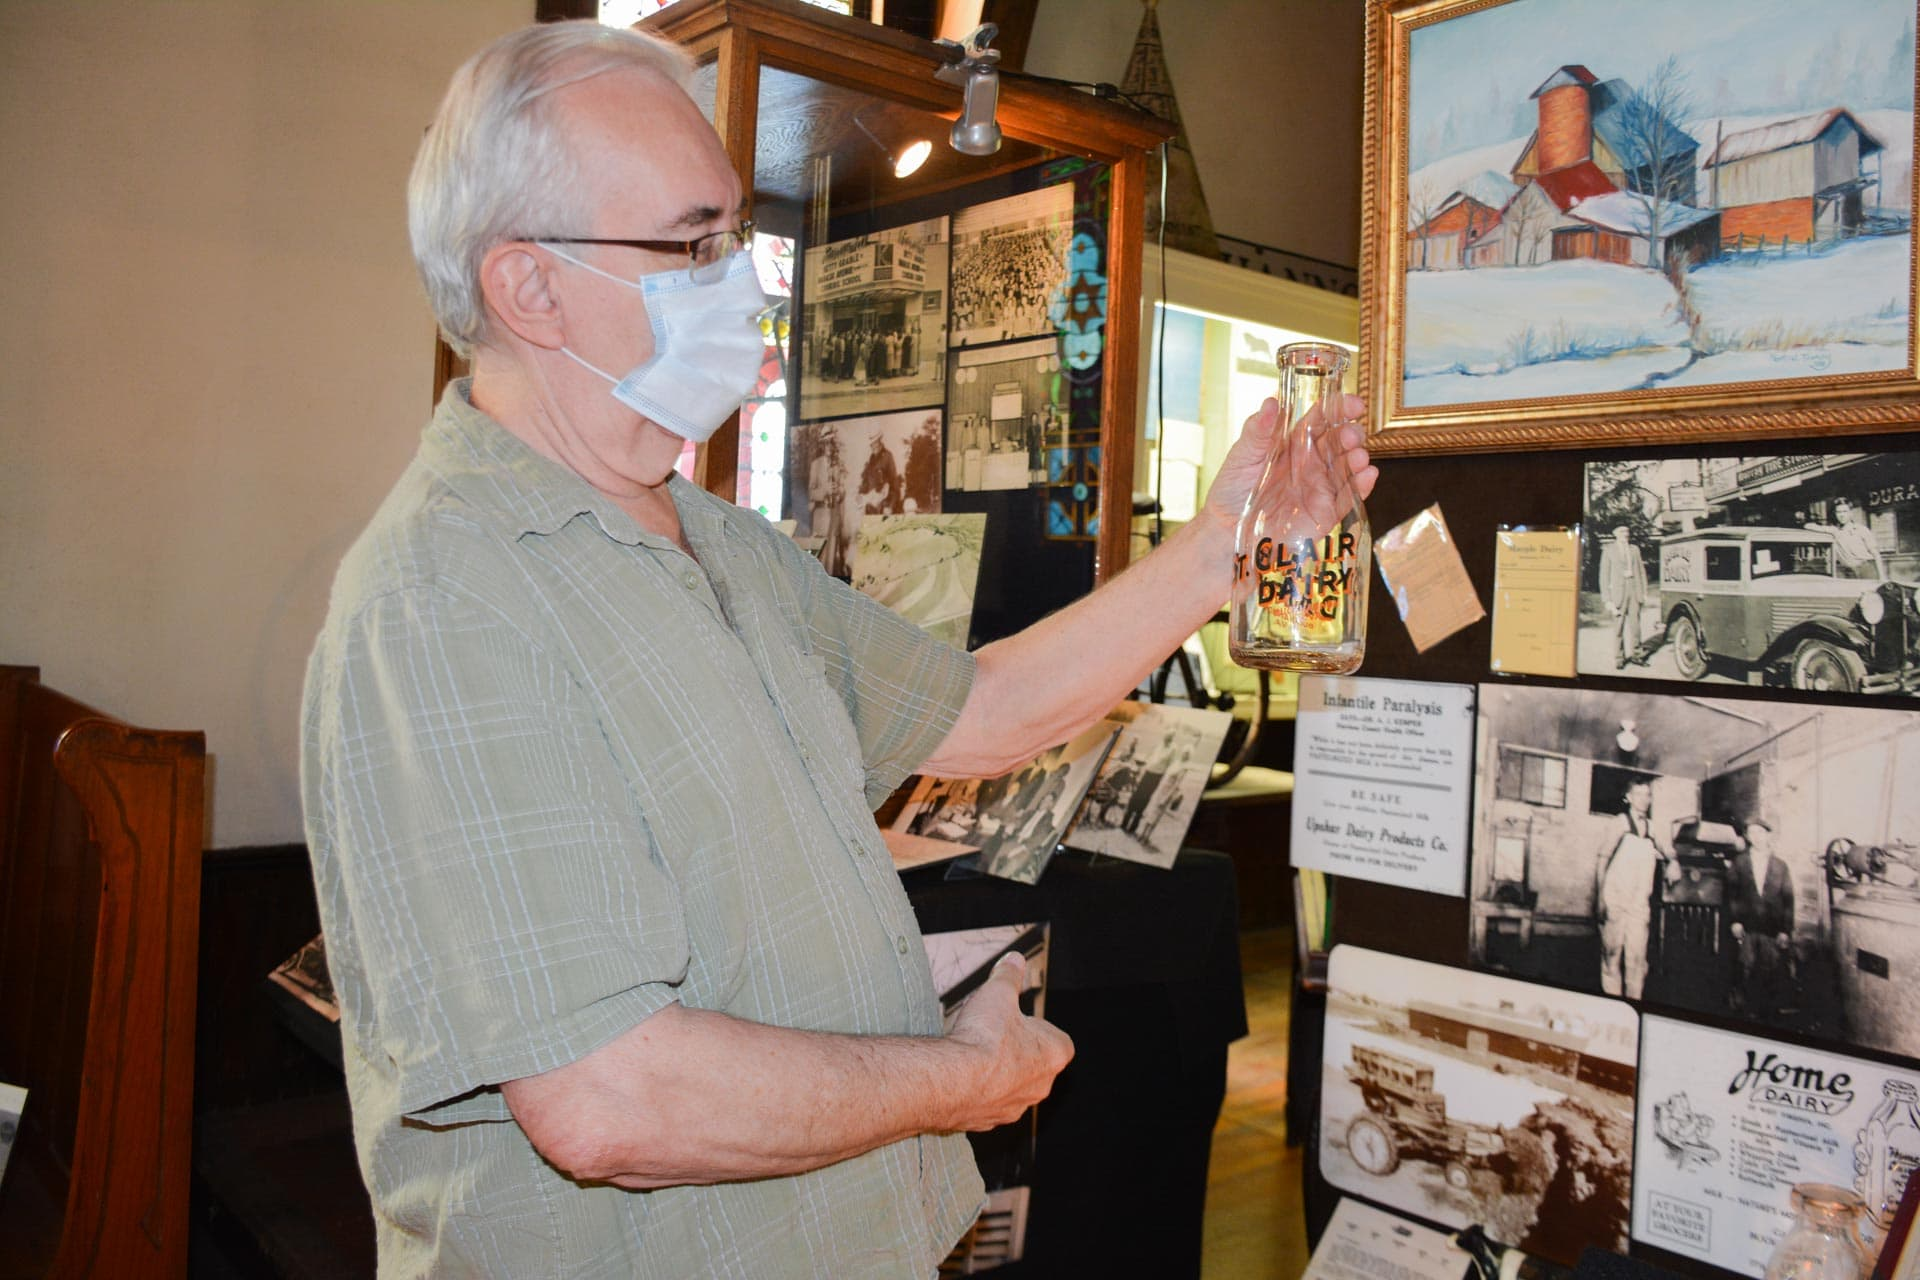 Hungry to learn about the history of food in Upshur County? Head to the History Center Museum